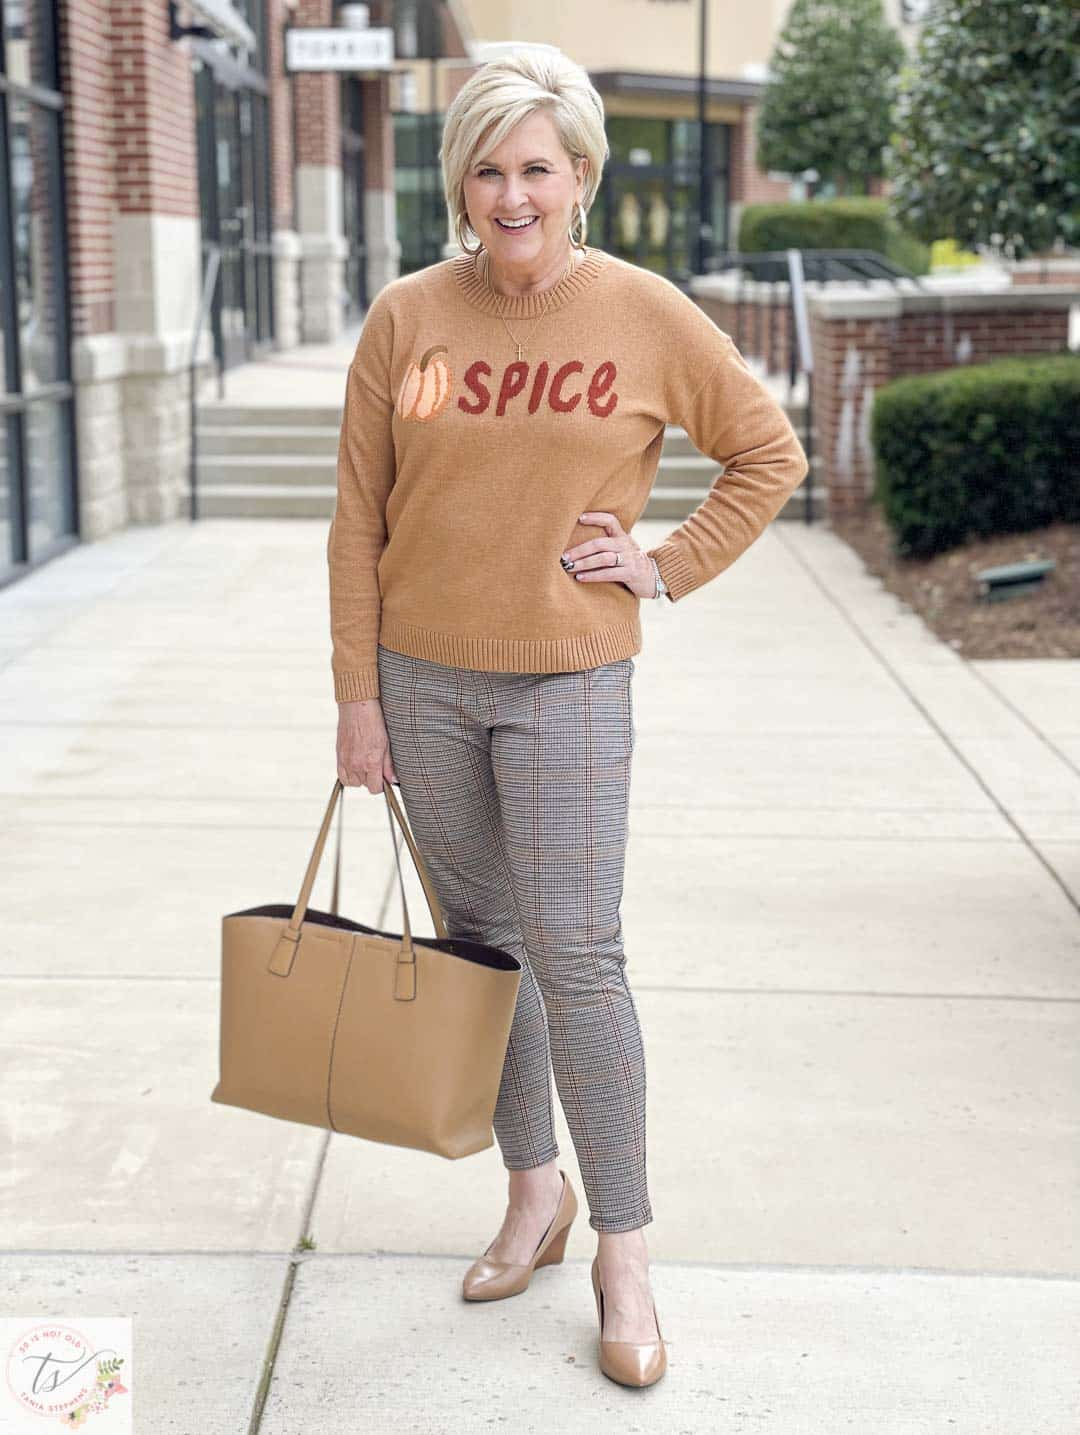 Over 40 Fashion Blogger, Tania Stephens, is wearing a Pumpkin Spice sweater, a pair plaid Ponte knit pants, and taupe wedges